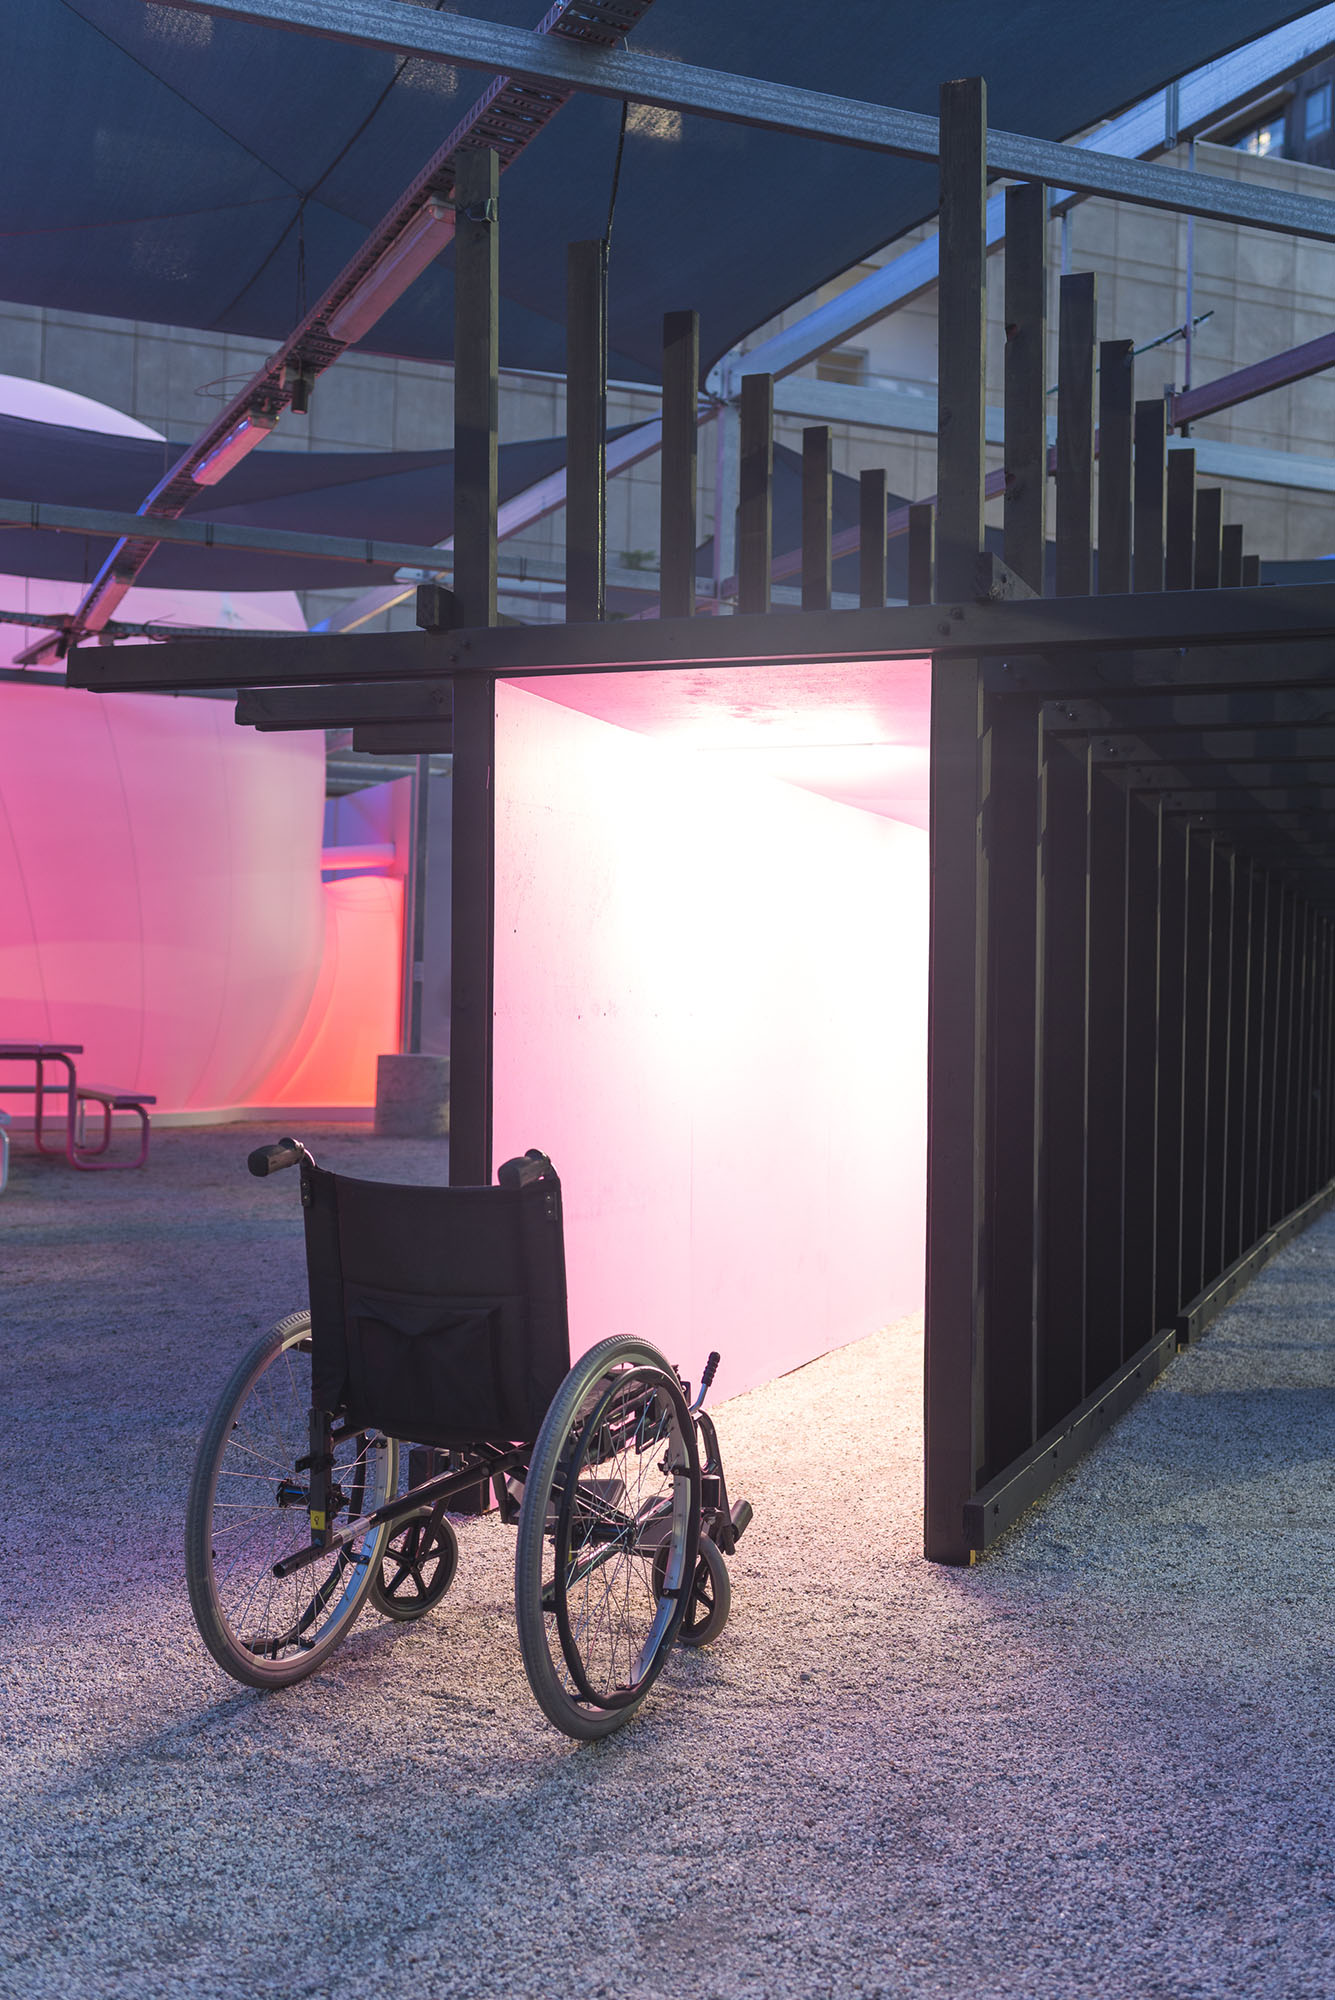 Install view. A wheelchair sits outside at night in front of a corridor, painted pink and lit from within by horizontal neon lights. The skeleton of the corridor is exposed and painted black.